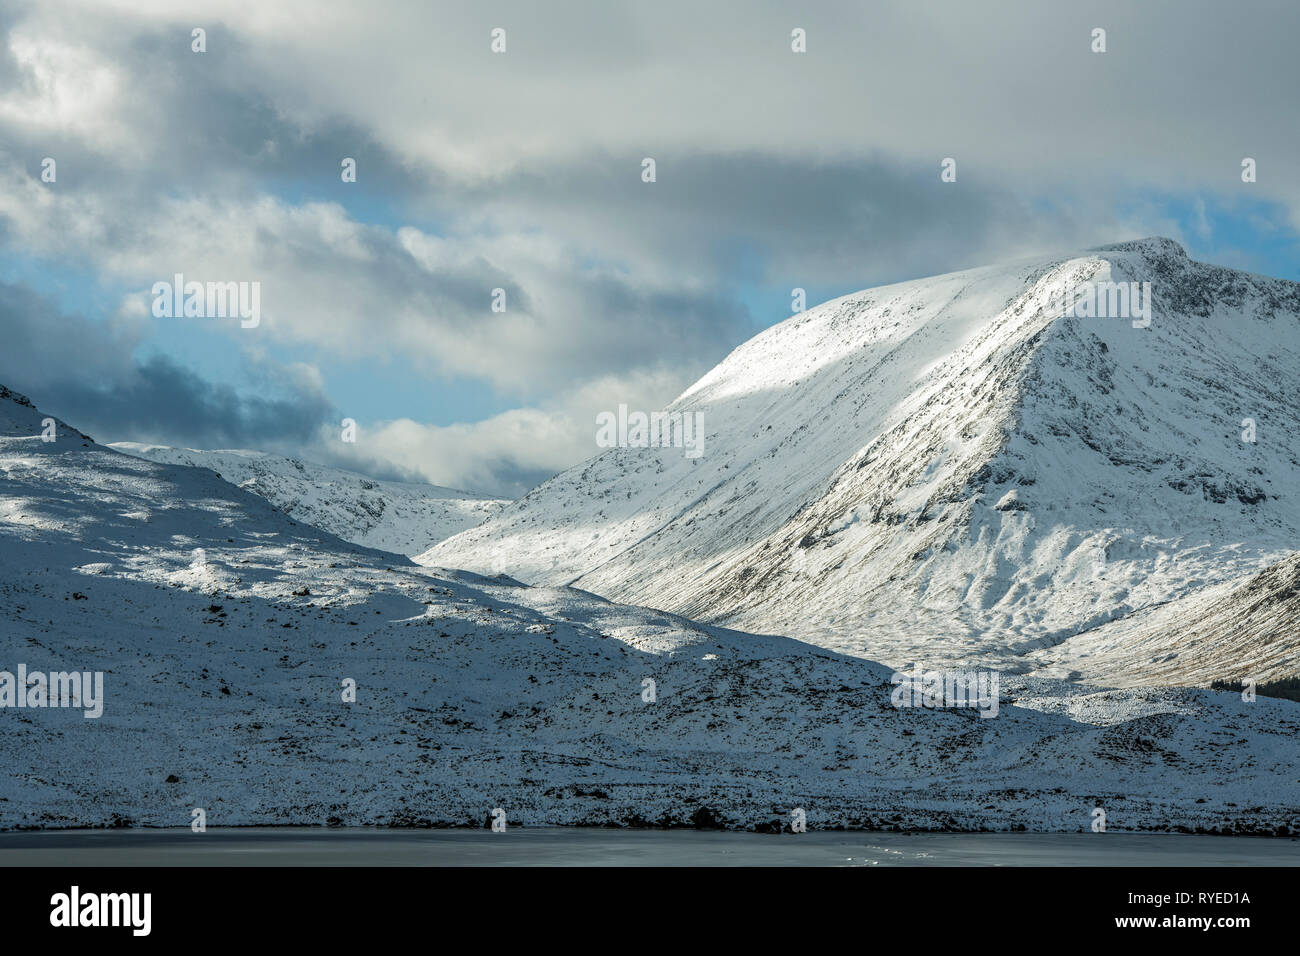 Rannoch Moor in the Scottish Highlands under snow in February. The photo shows snow covered mountains with cloud shadows on them. - Stock Image